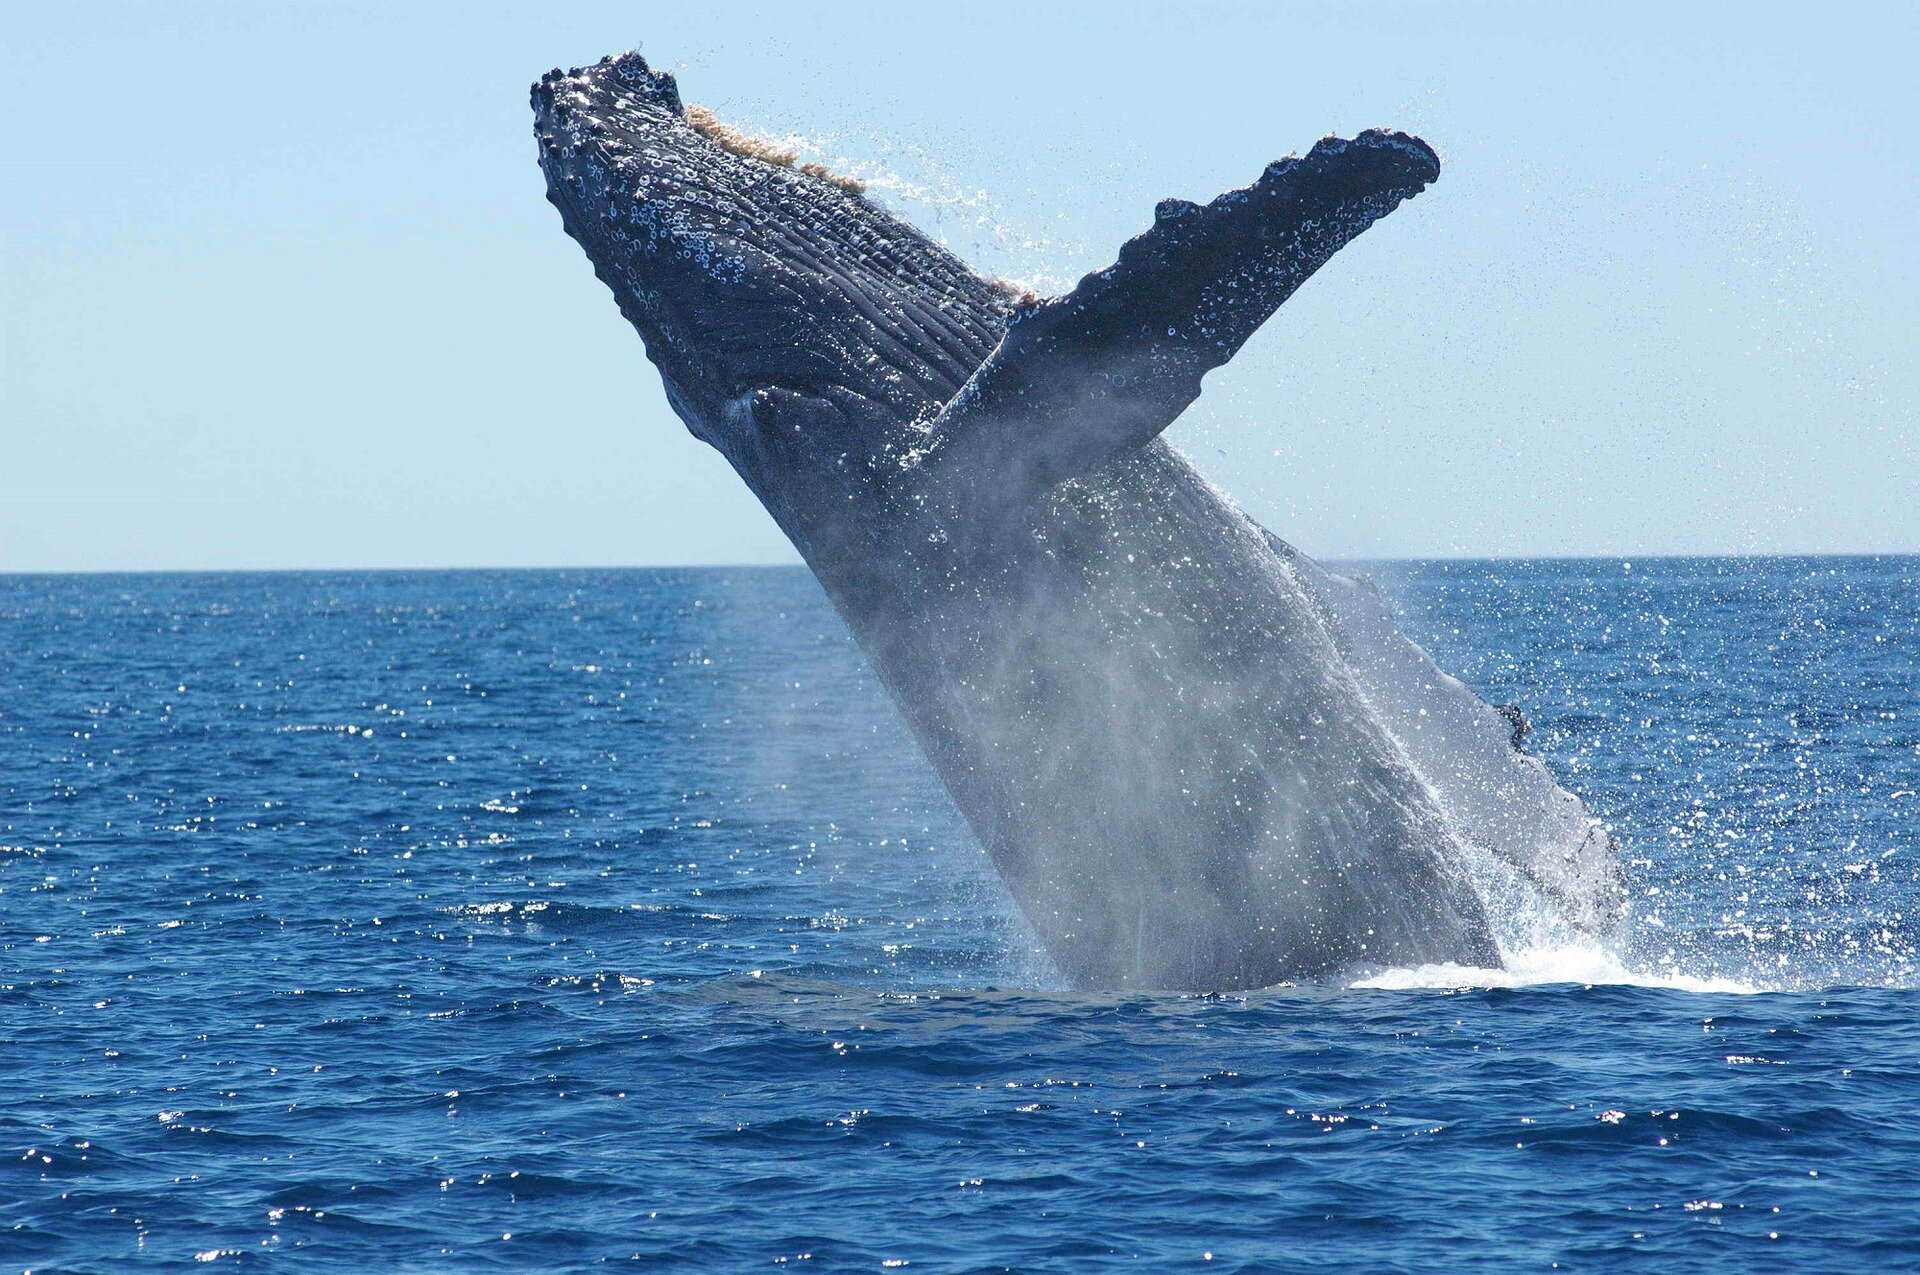 Temperature blob in Pacific Ocean gives a glimpse of climate impact on humpback whales